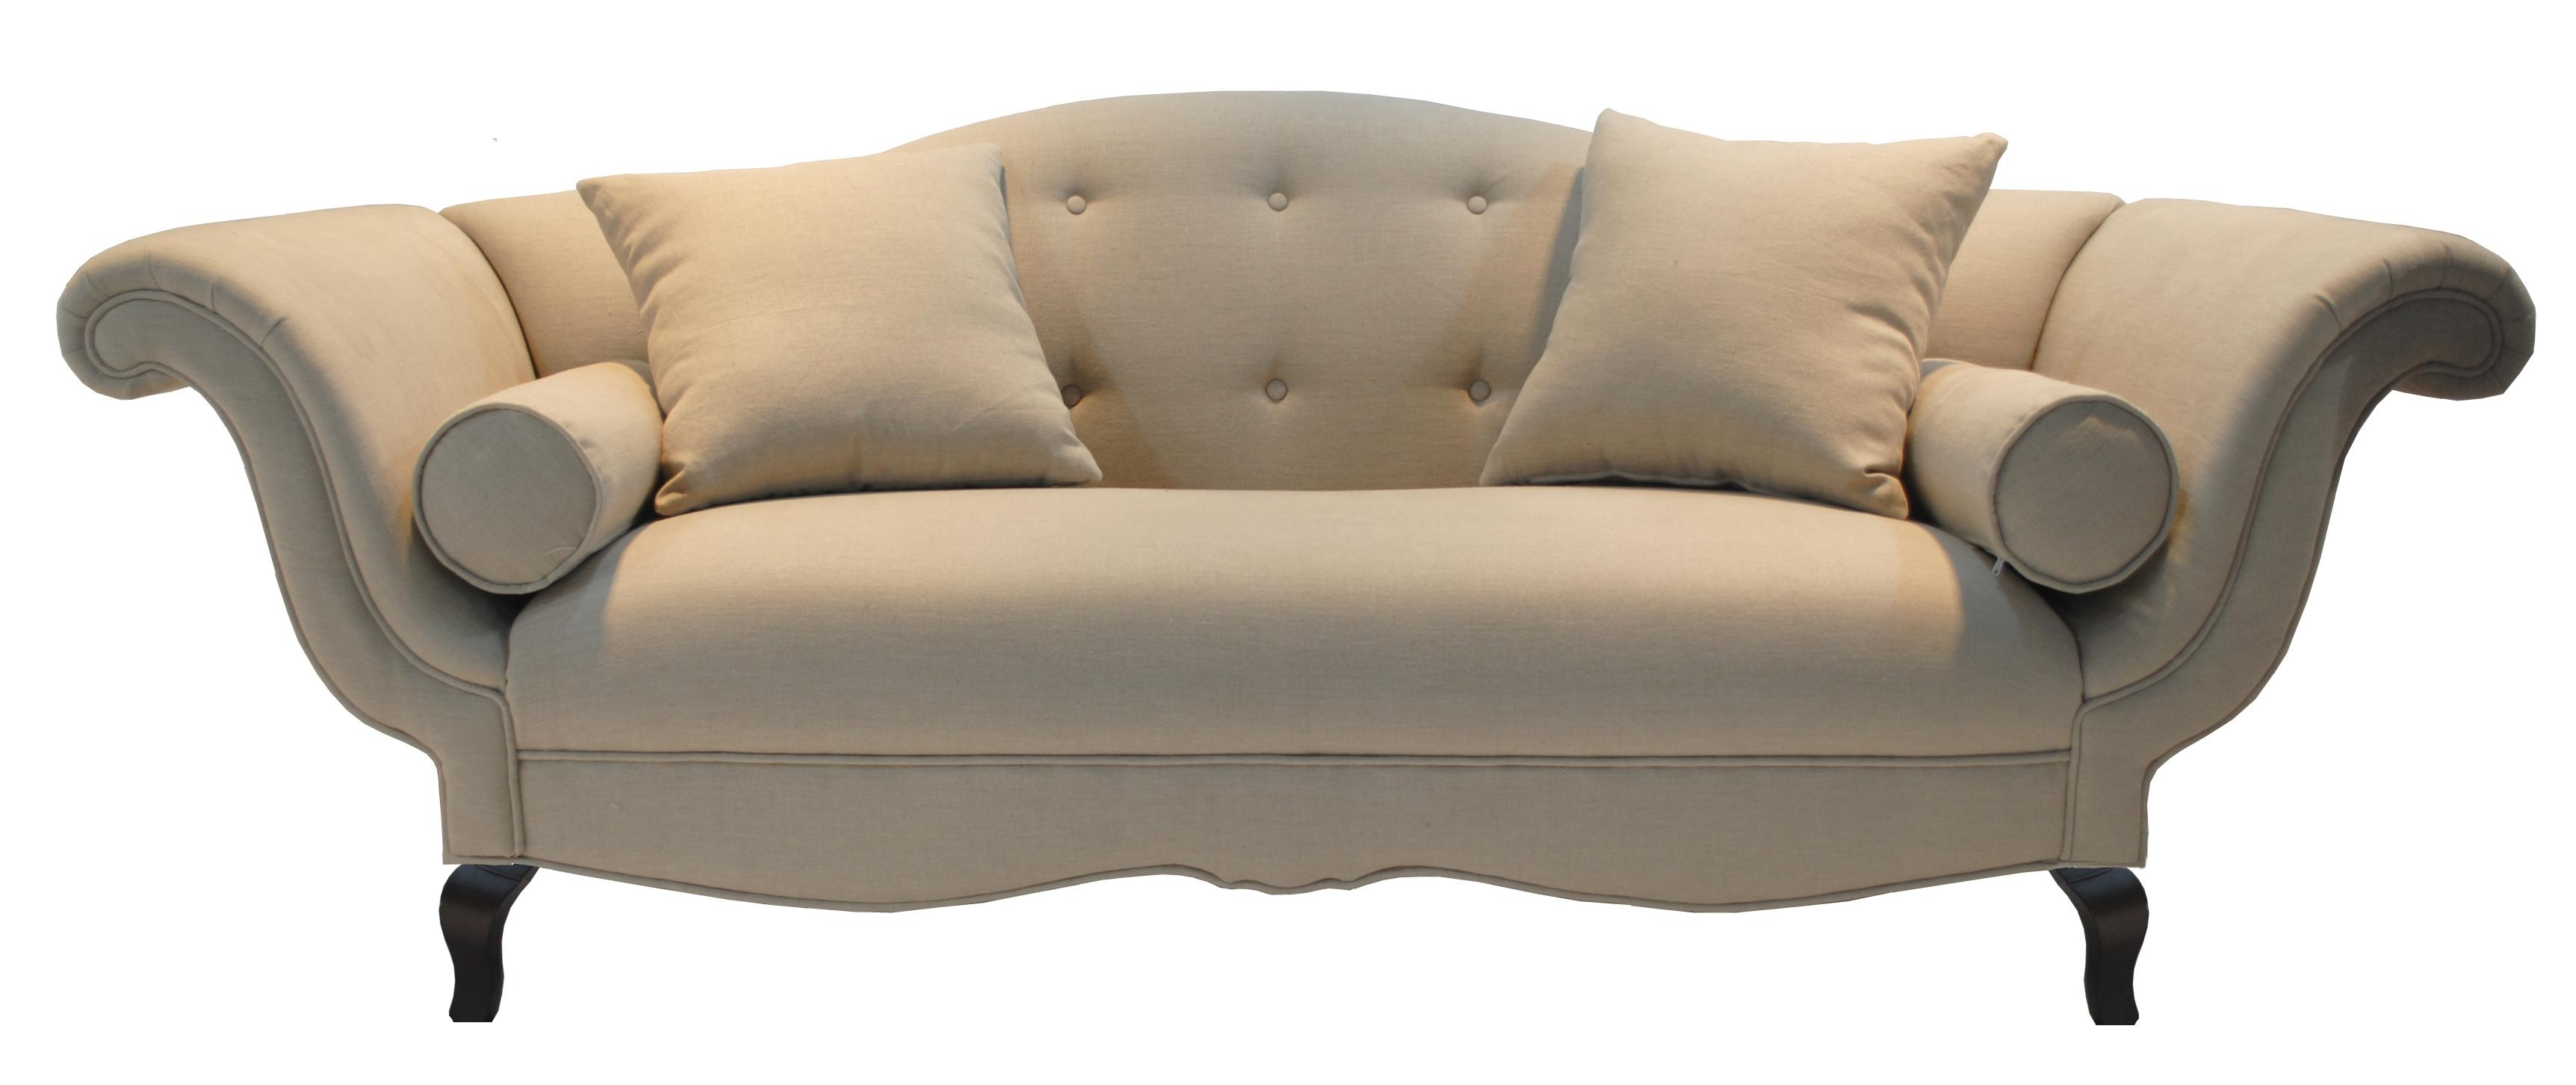 Unusual Sofa Unusual Sofa Design Retrovirus Weird Things